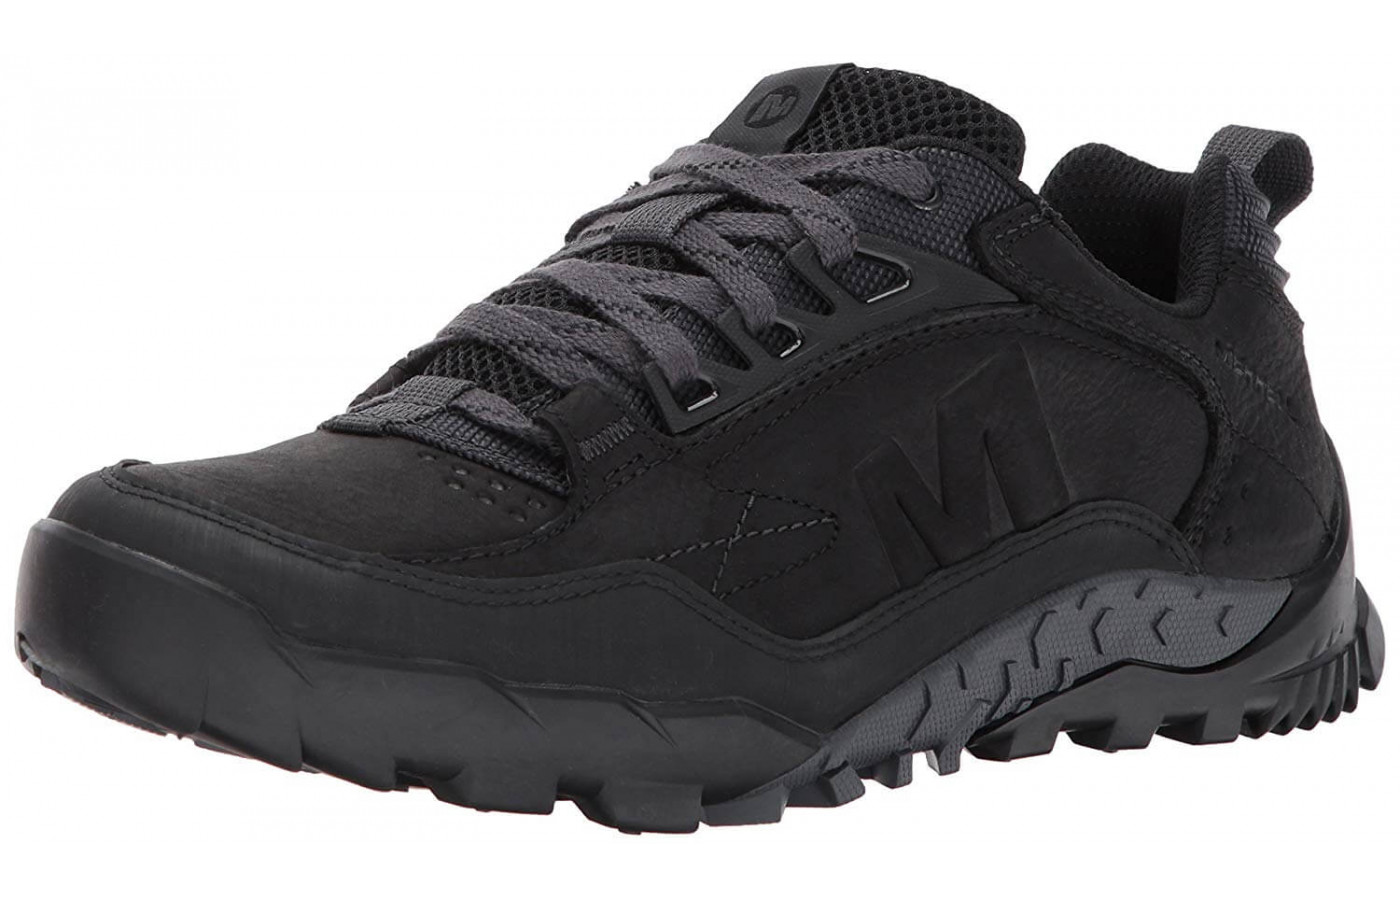 The Merrell Men's Annex Trak Low Shoe will support the foot